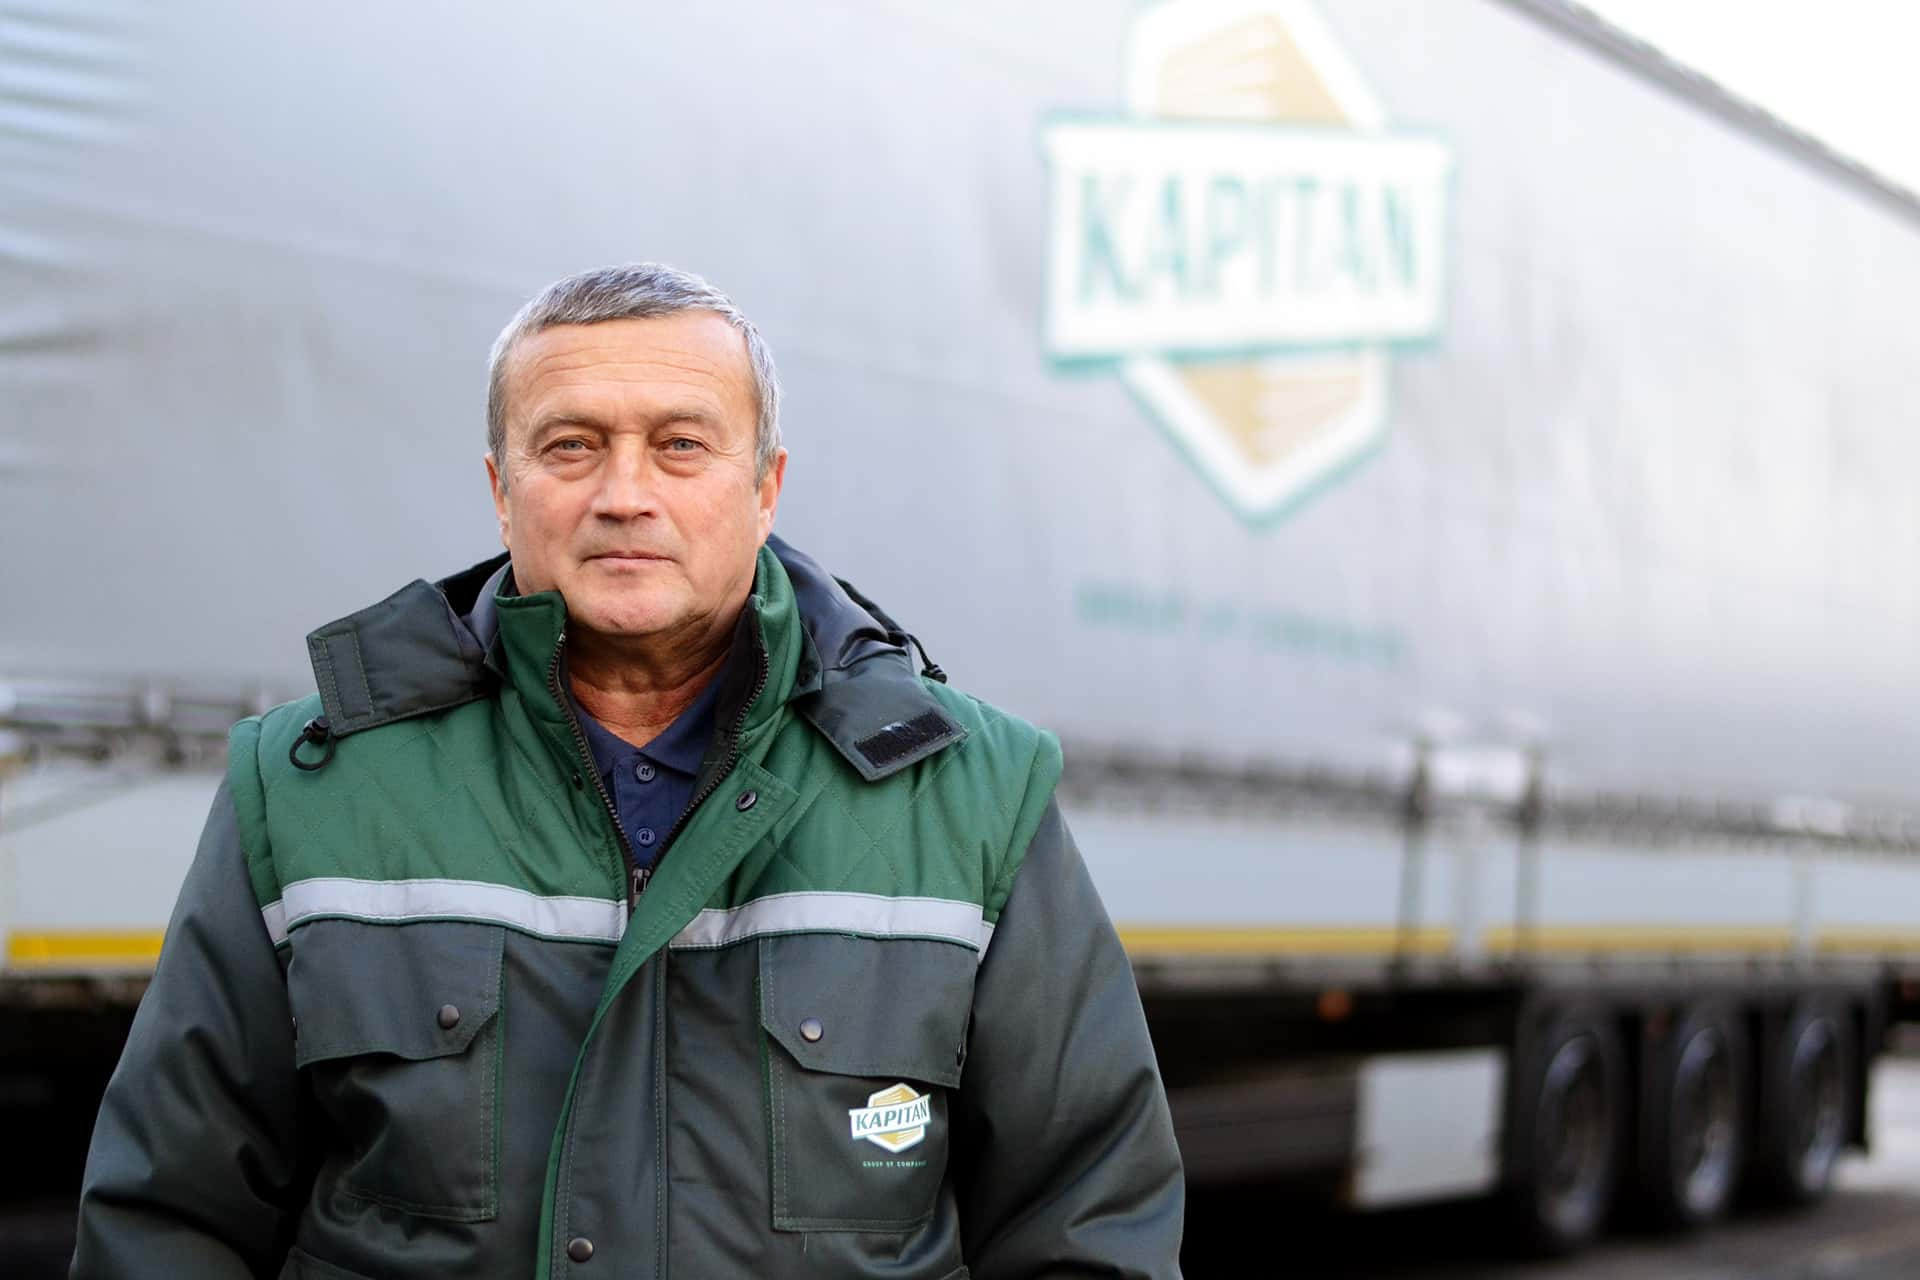 kapitanlogistics drivers career